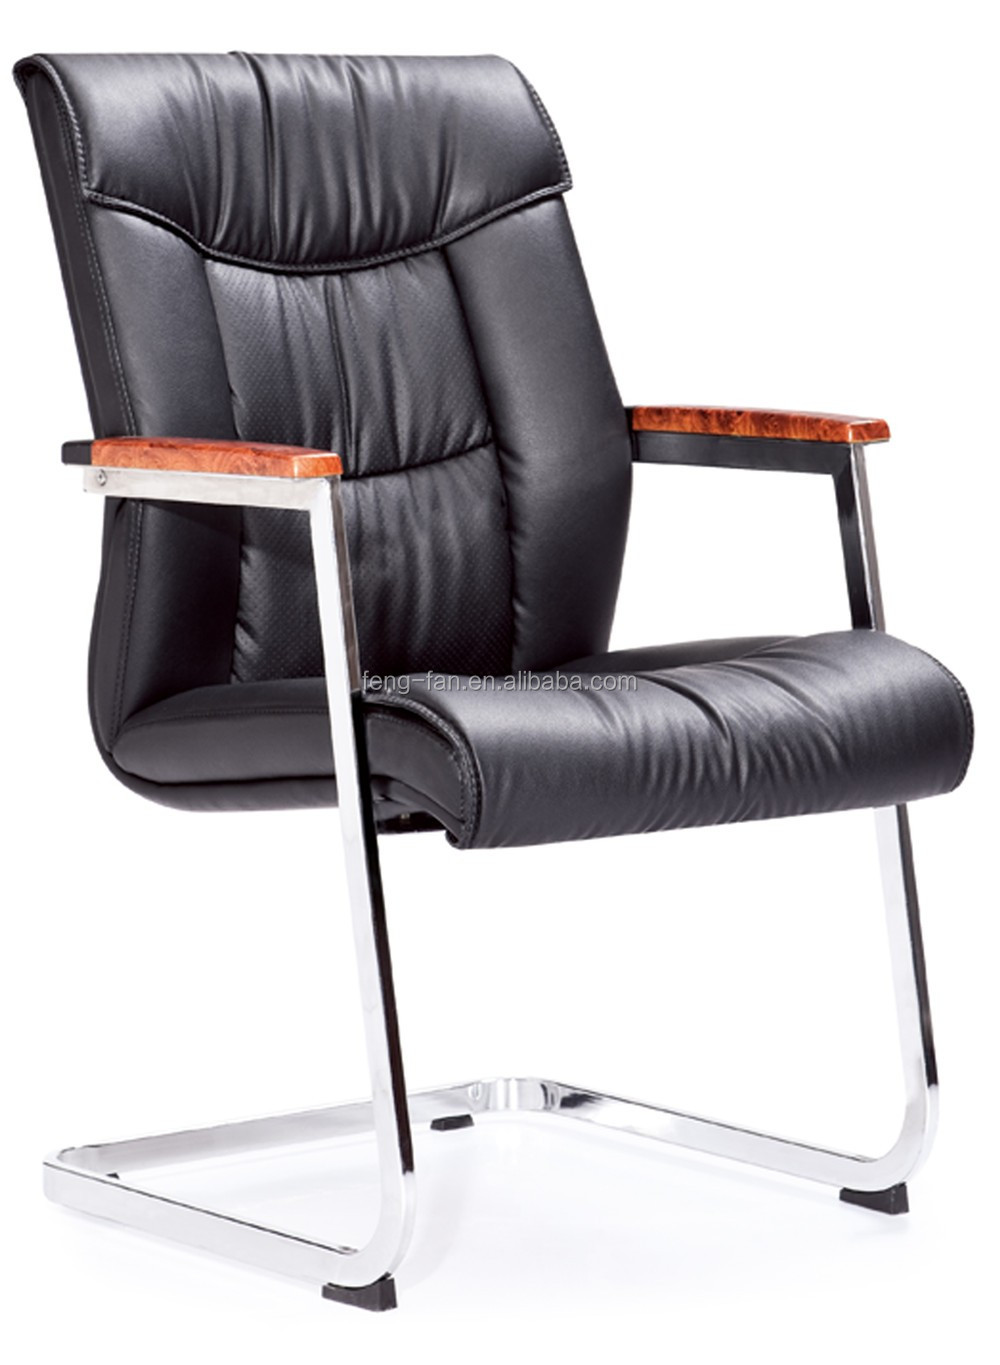 Simple leather meeting room chairs design office chair 6225